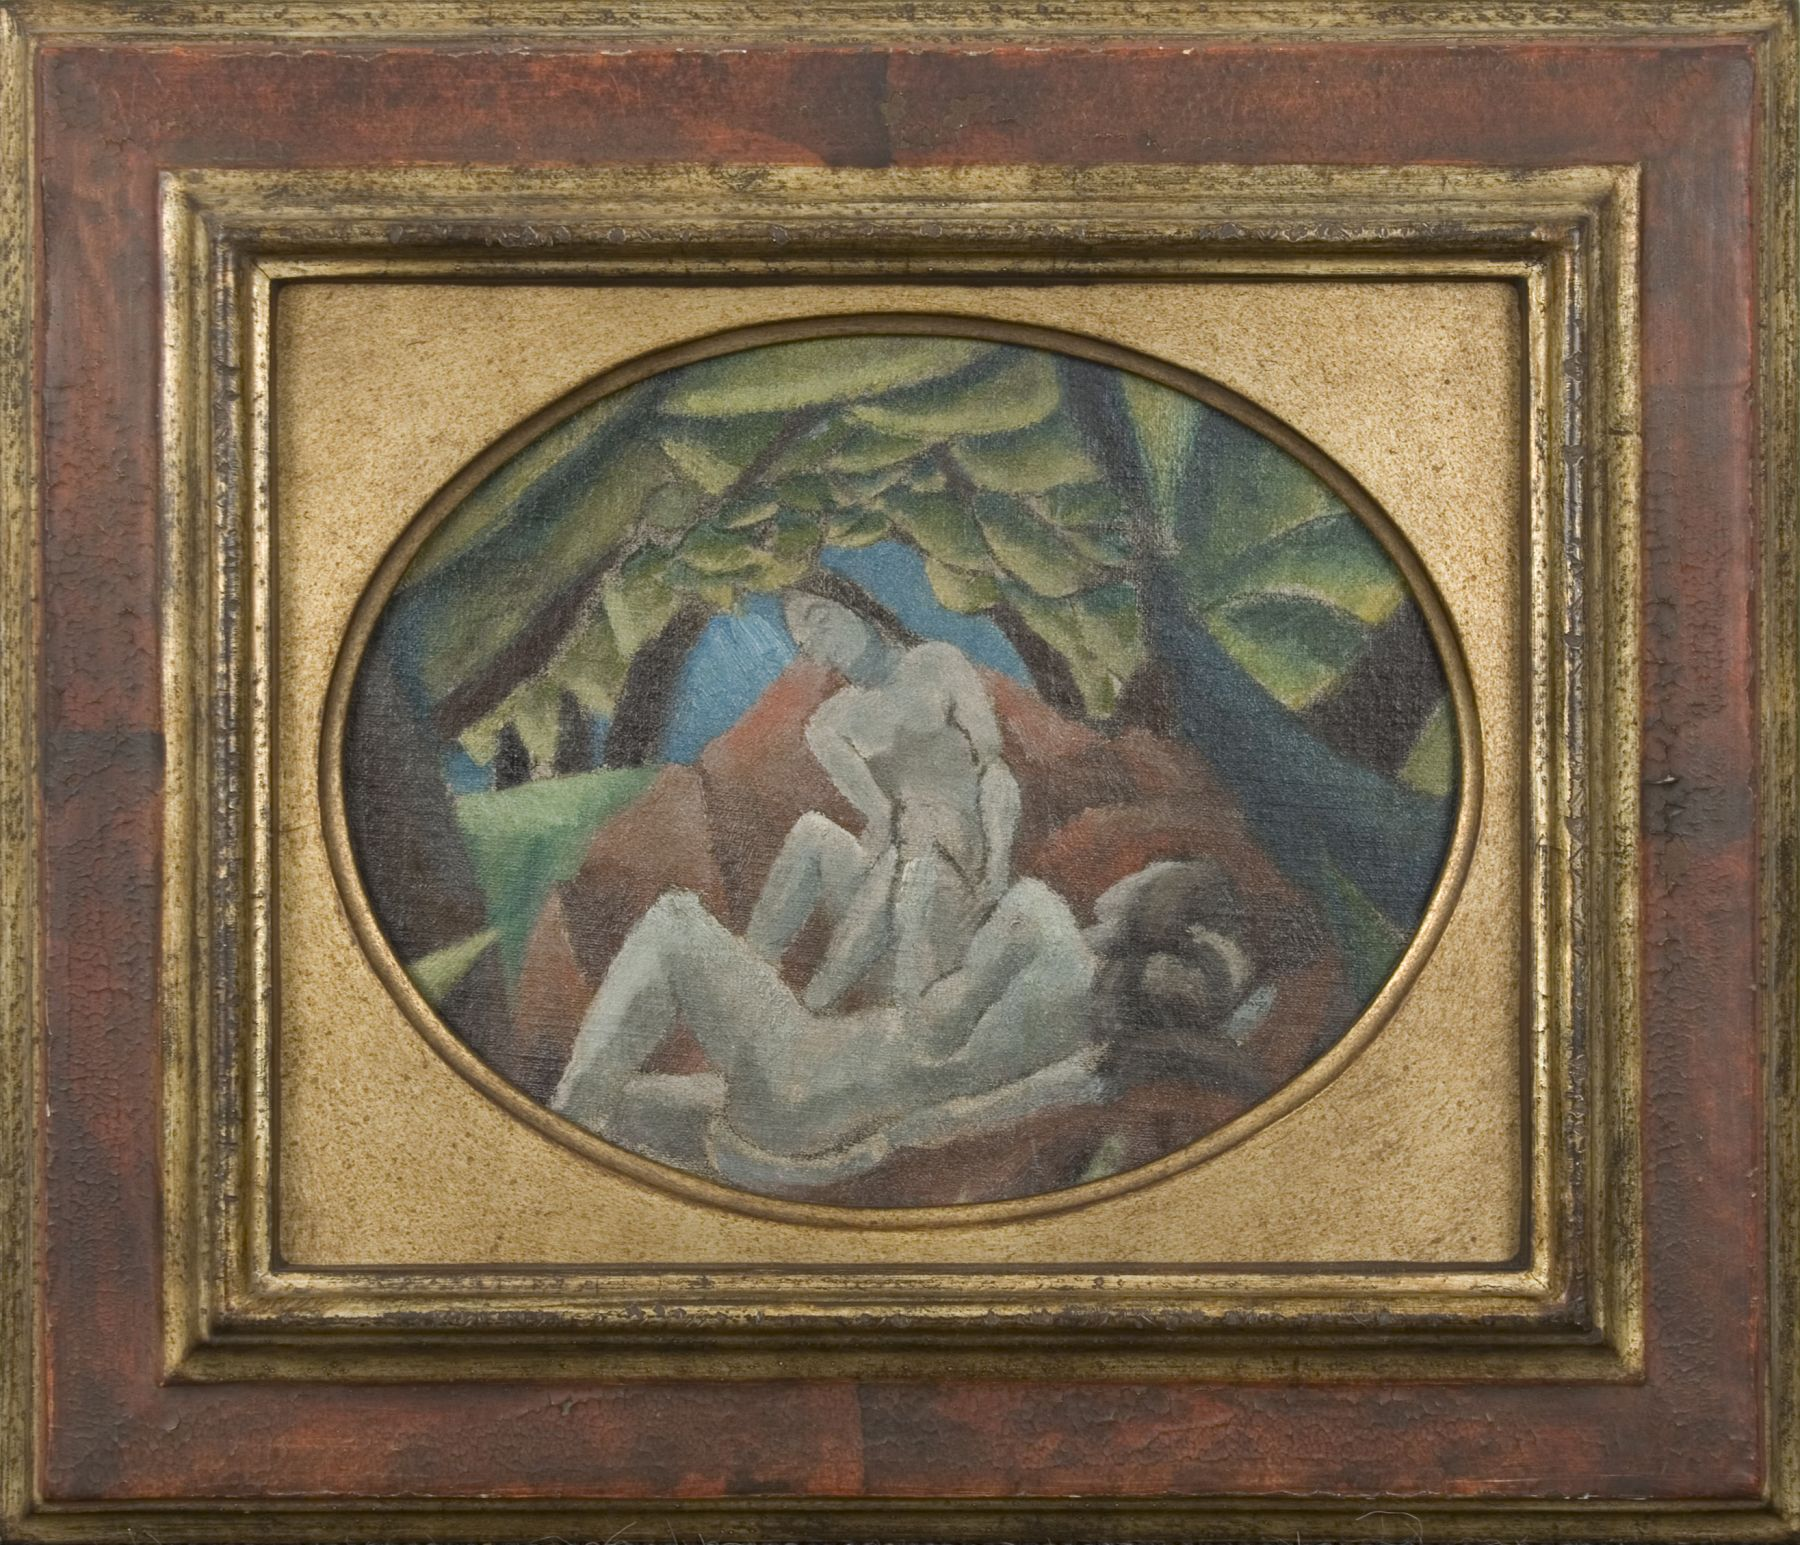 Max Weber, Nudes in Landscape, c. 1911, oil on canvas mounted on board, 7 1/8 x 9 1/8 inches